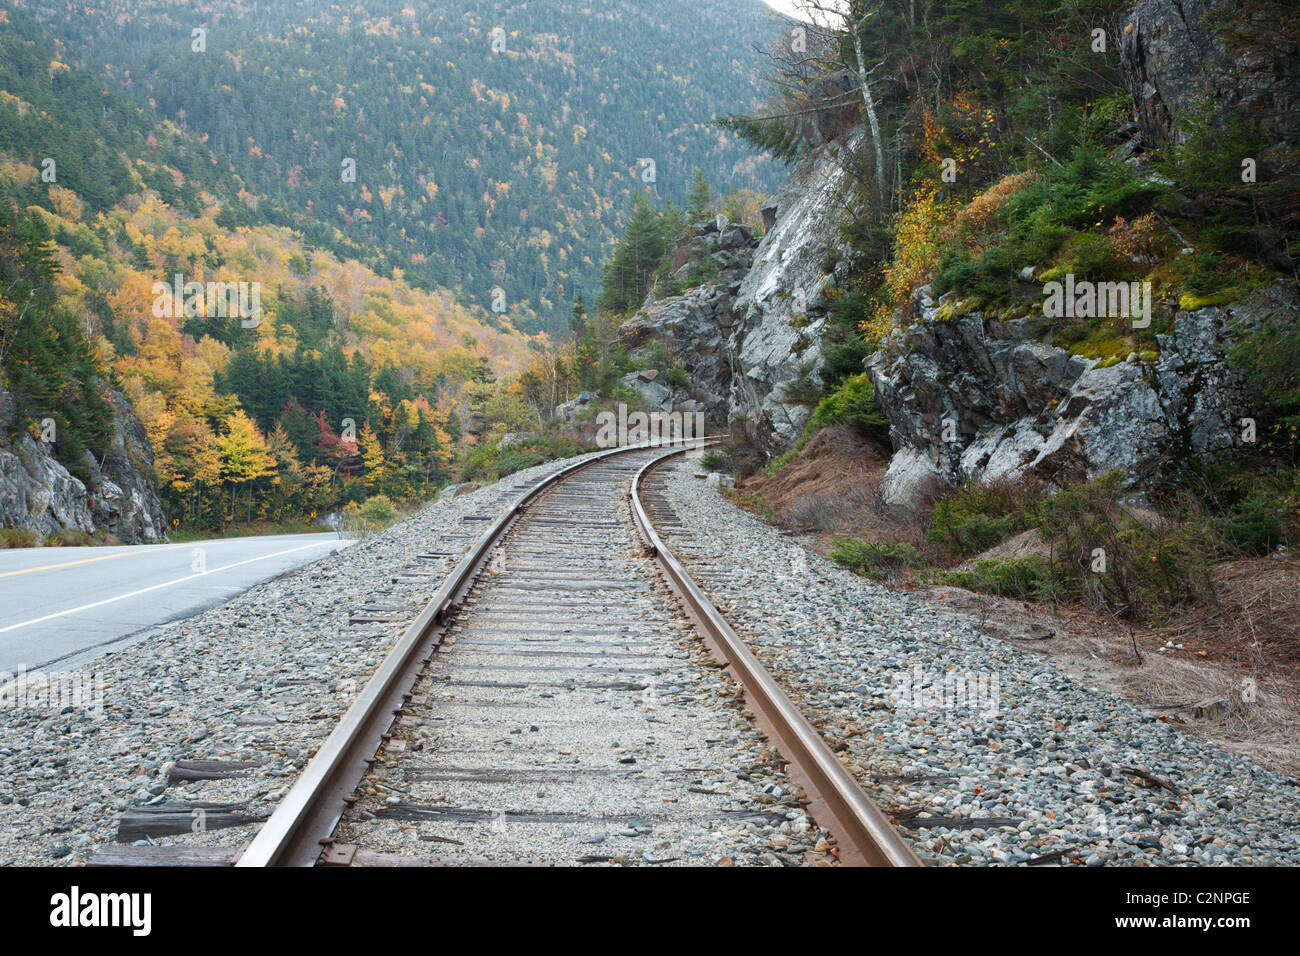 Crawford Notch State Park - Old Maine Central Railroad in the White Mountains, New Hampshire USA. Stock Photo